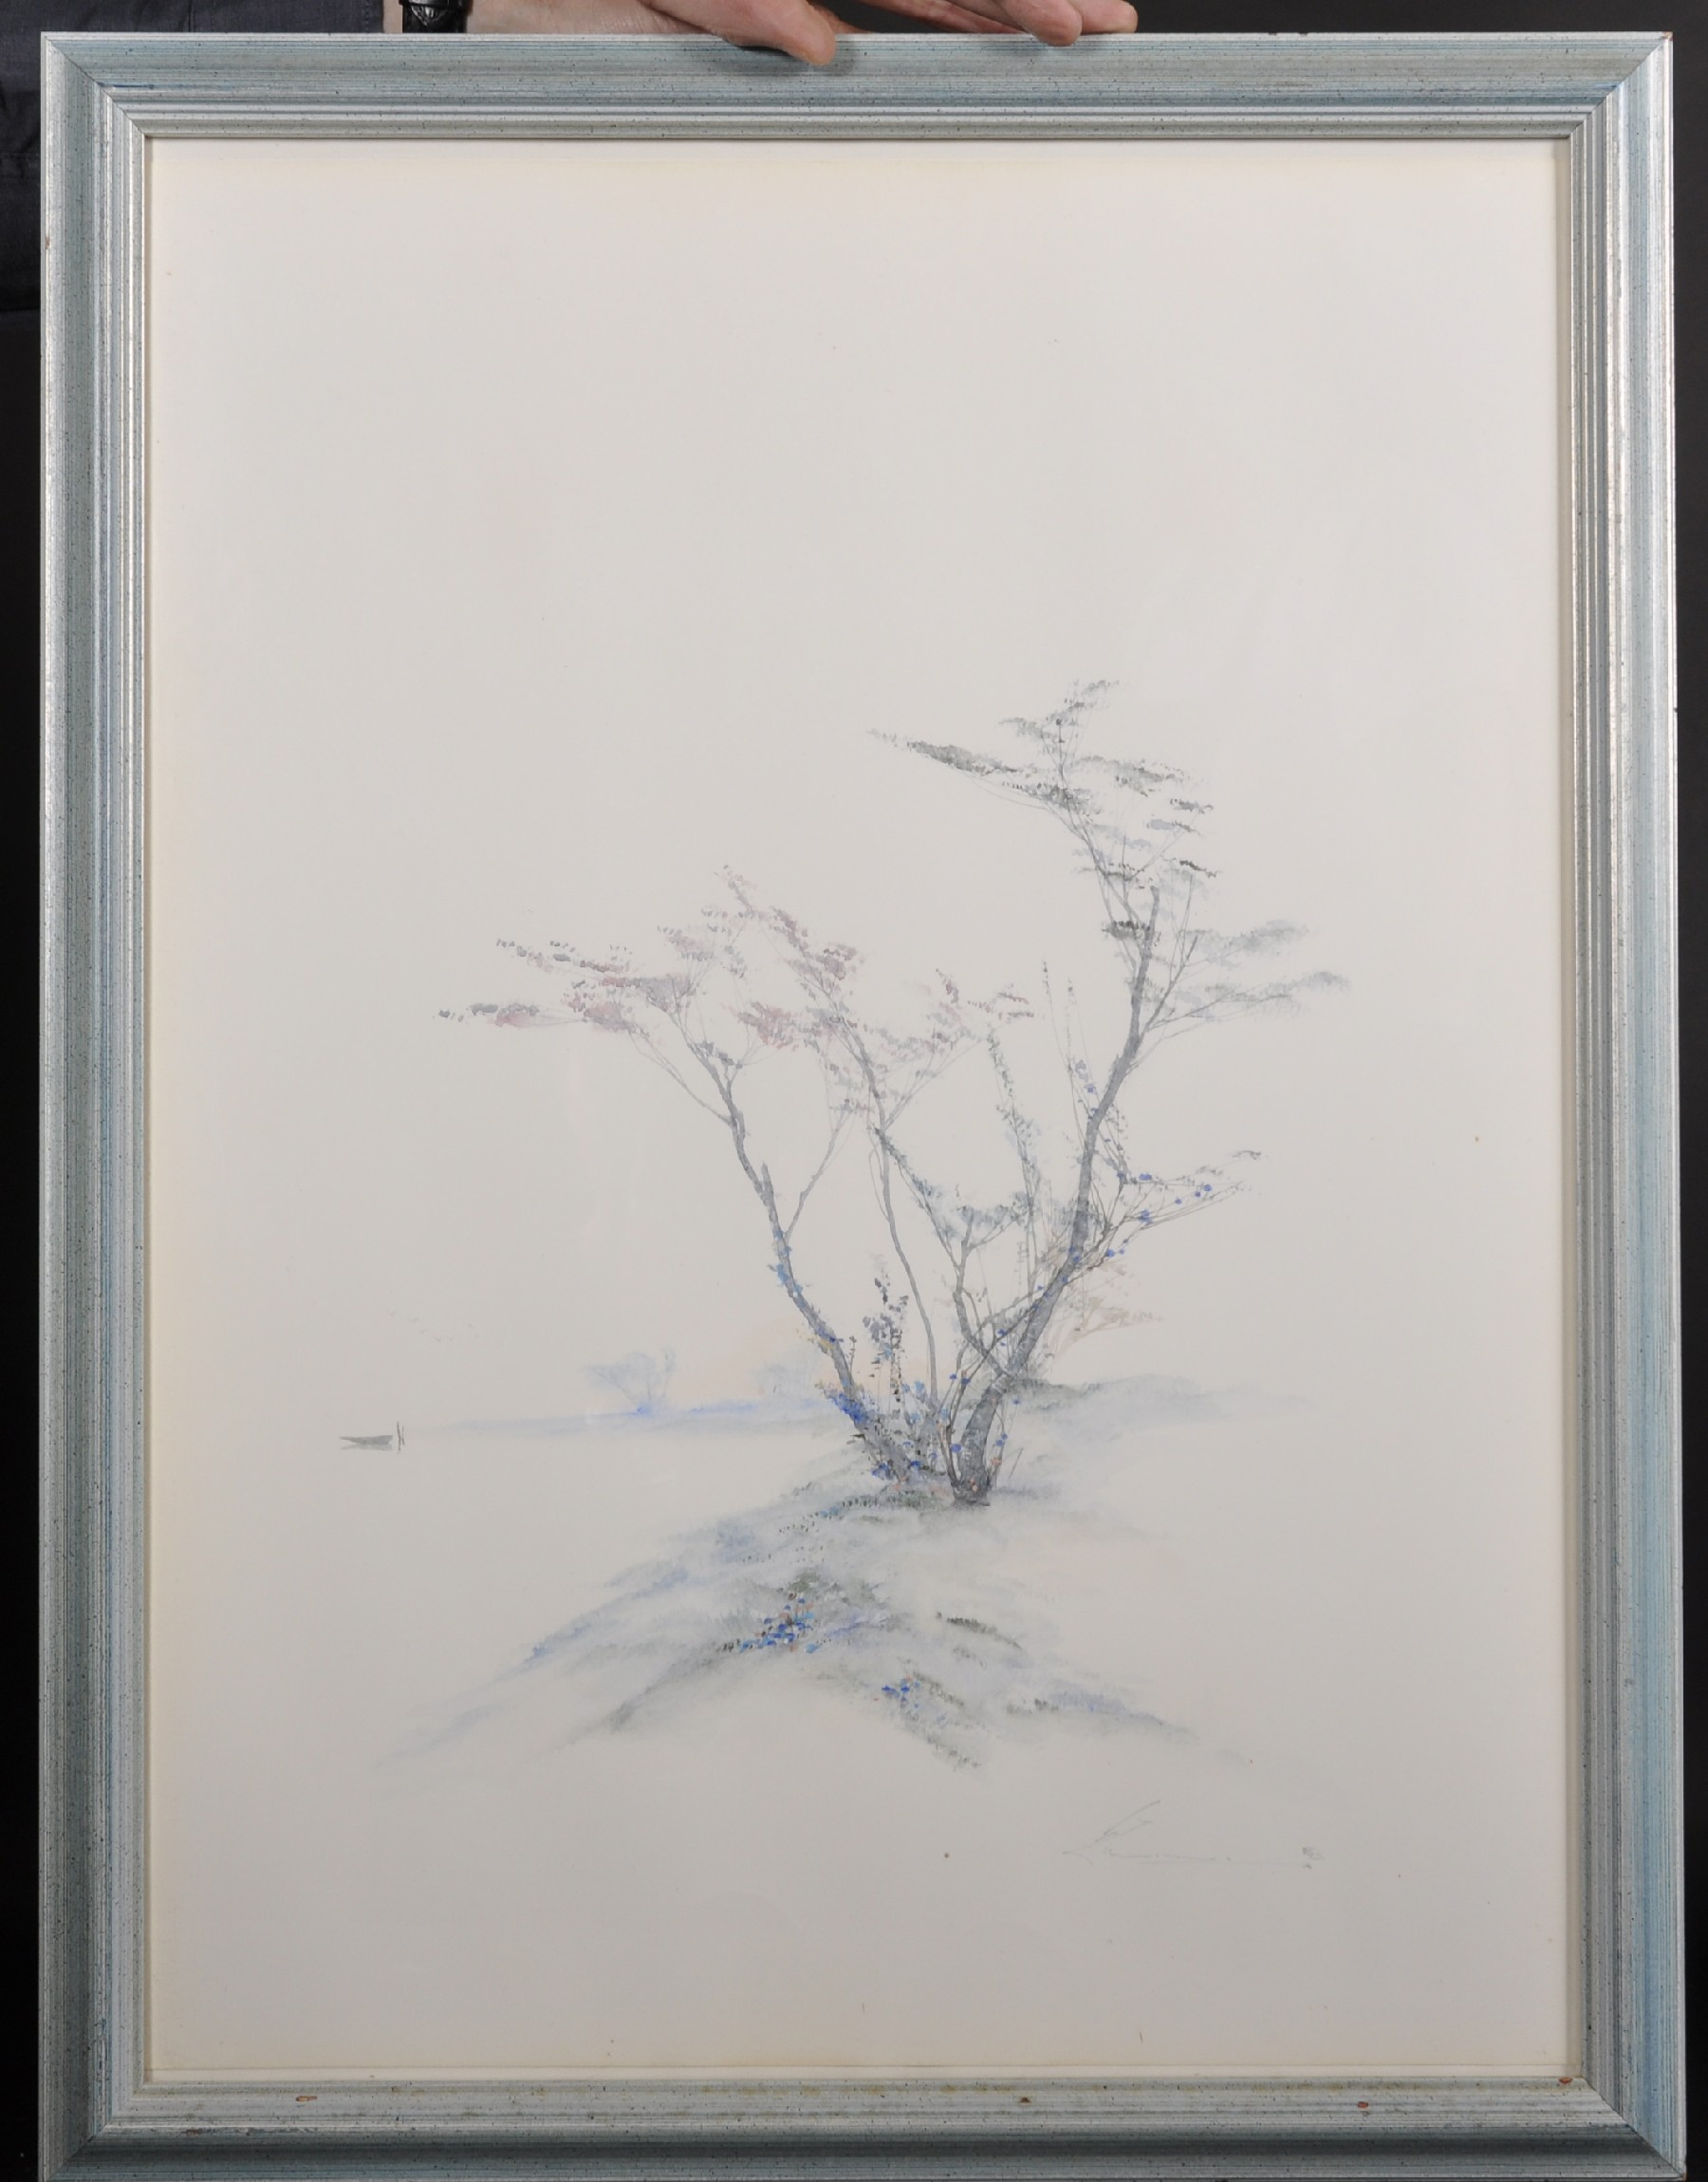 20th Century English School. An Aesthetic Landscape with a Tree, Watercolour, Indistinctly Signed in - Image 3 of 6